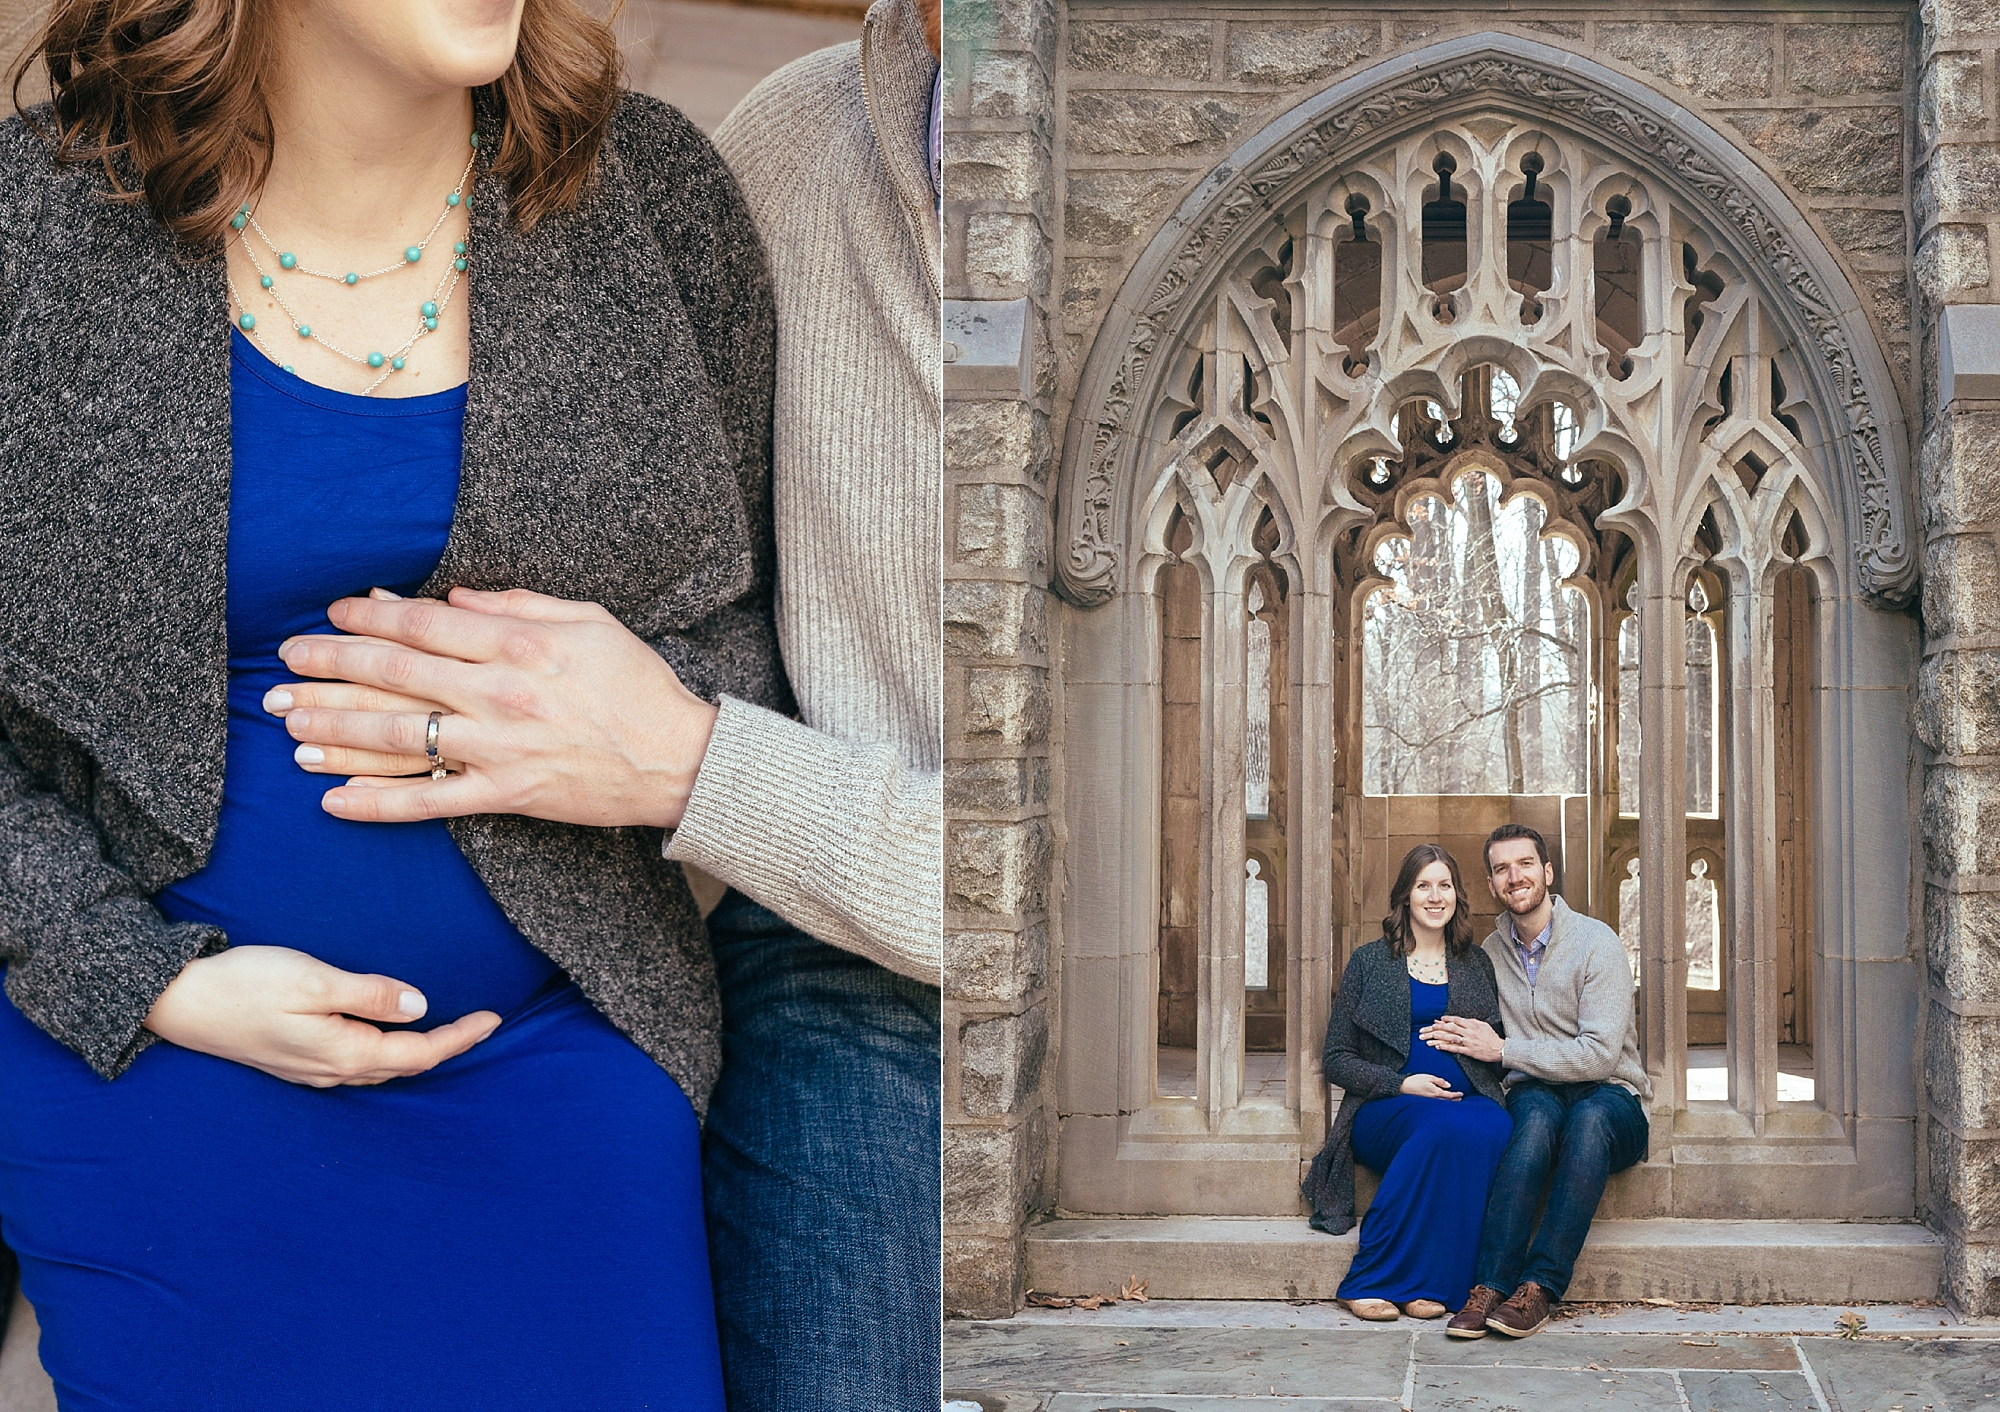 Joe_Mac_Creative_Maternity_Wedding_Engagements_Photography_Philadelphia_Valley_Forge__0025.jpg